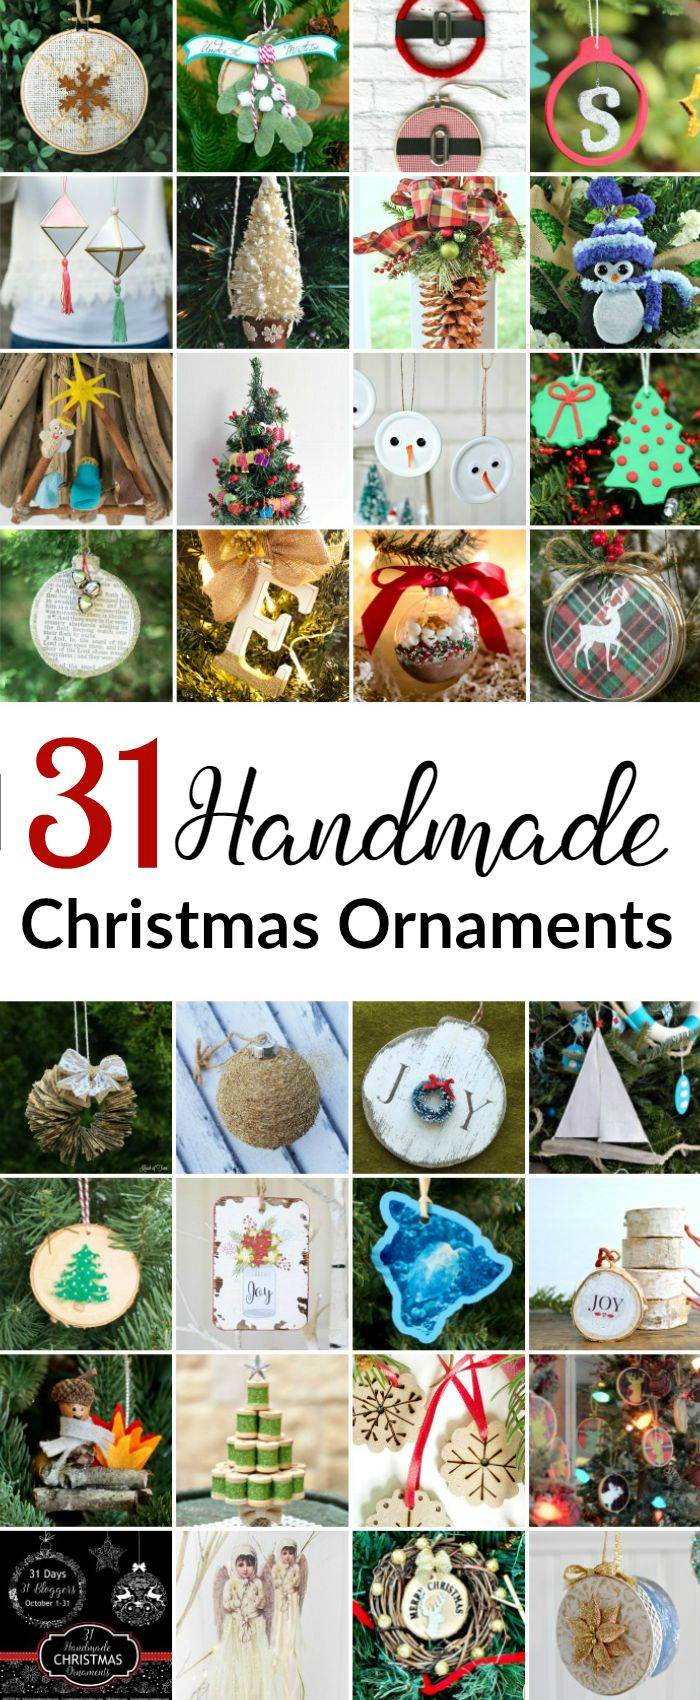 31 Handmade Christmas Ornaments